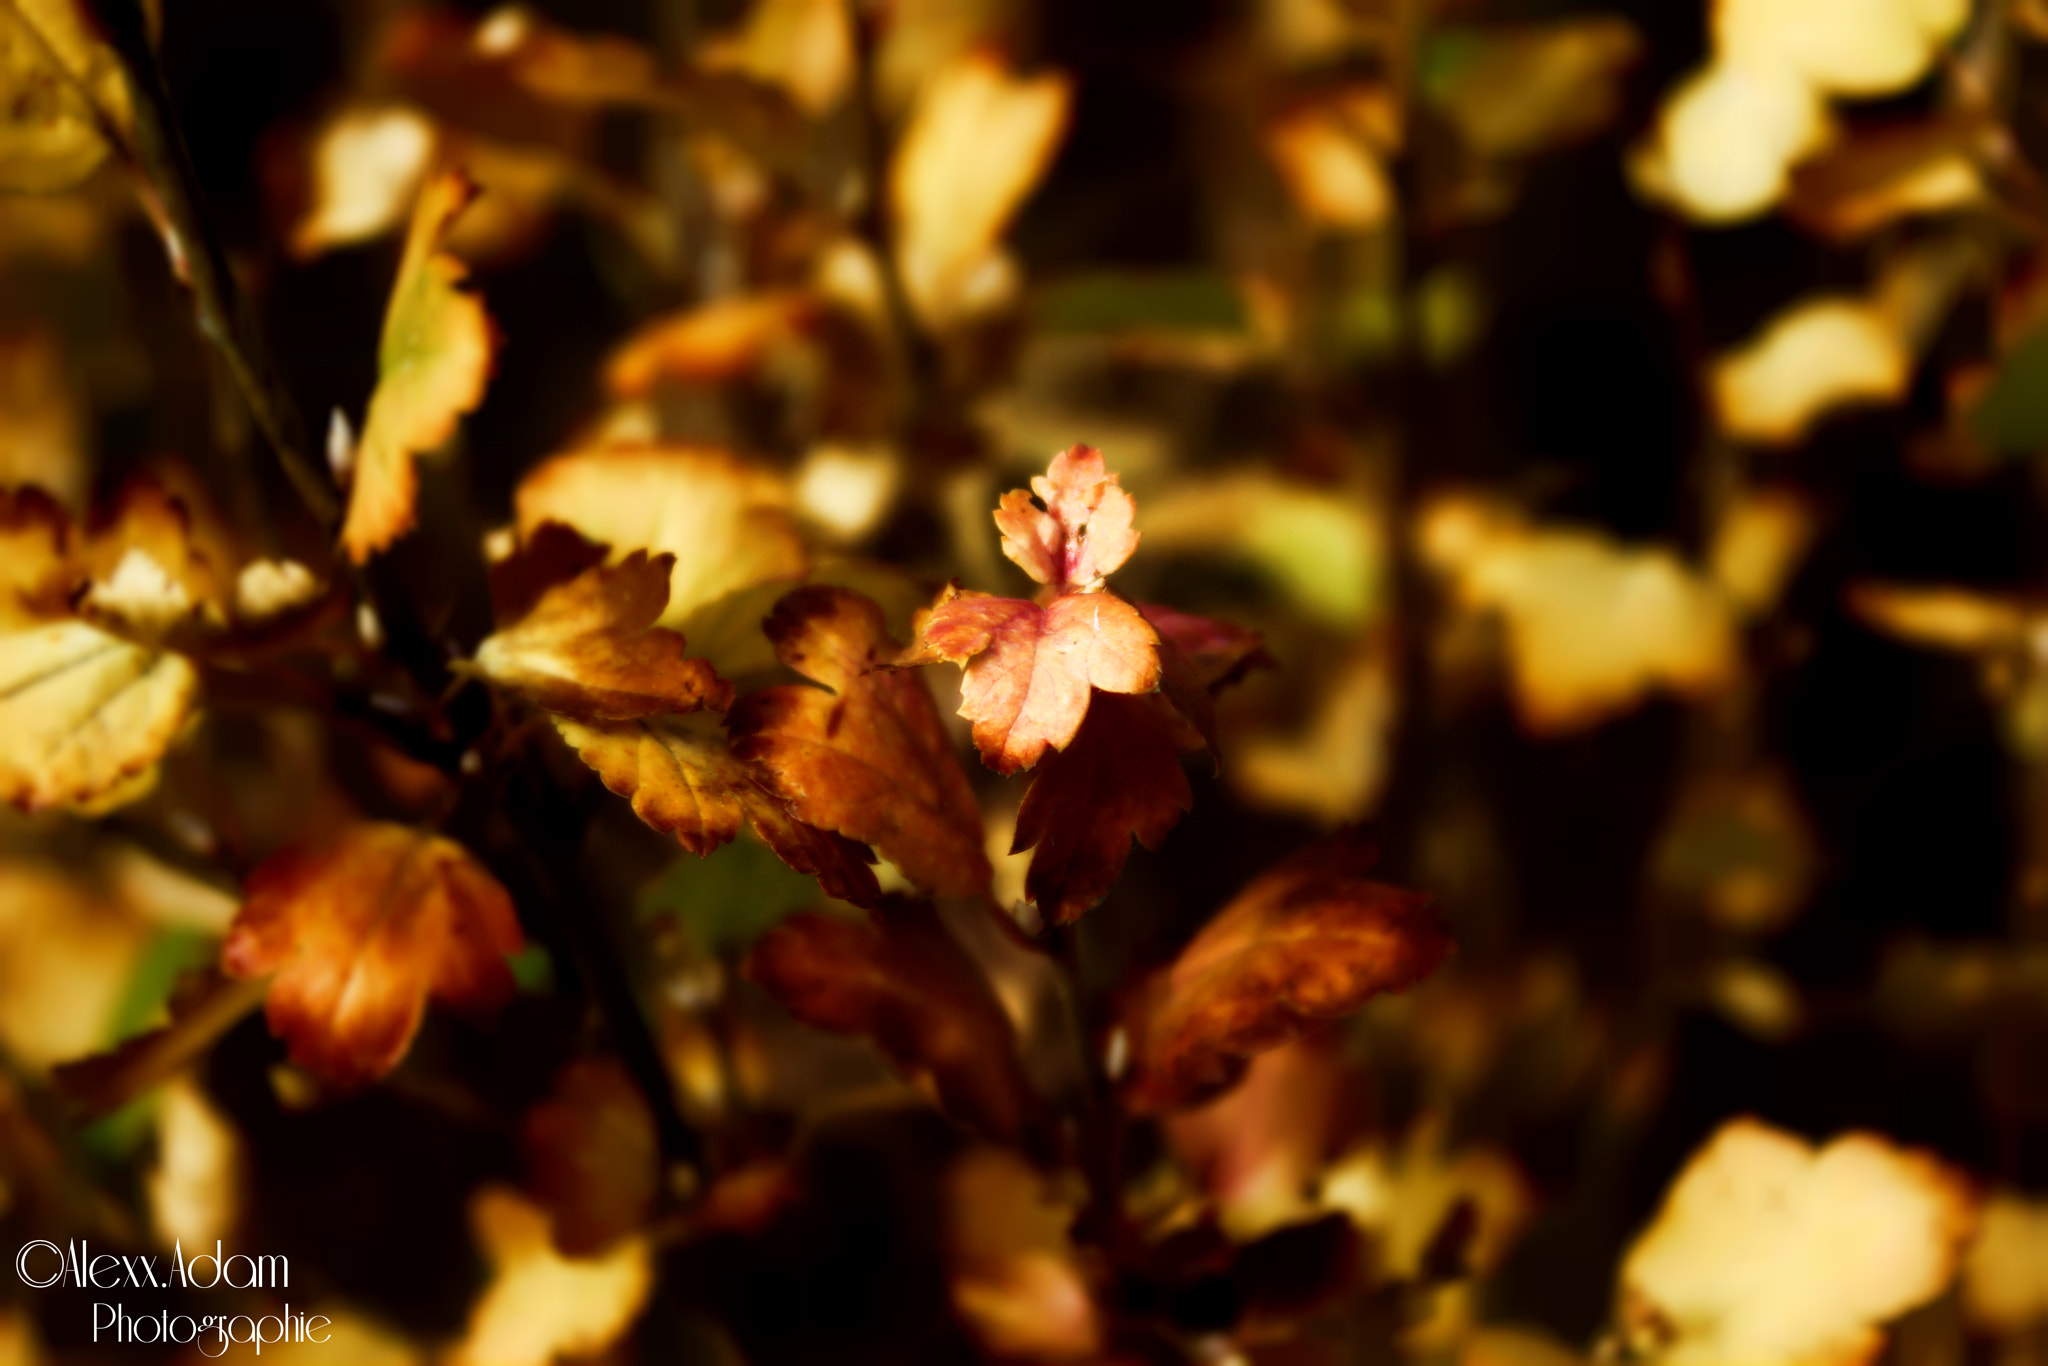 Photograph Automn coming by Alexx Adam on 500px